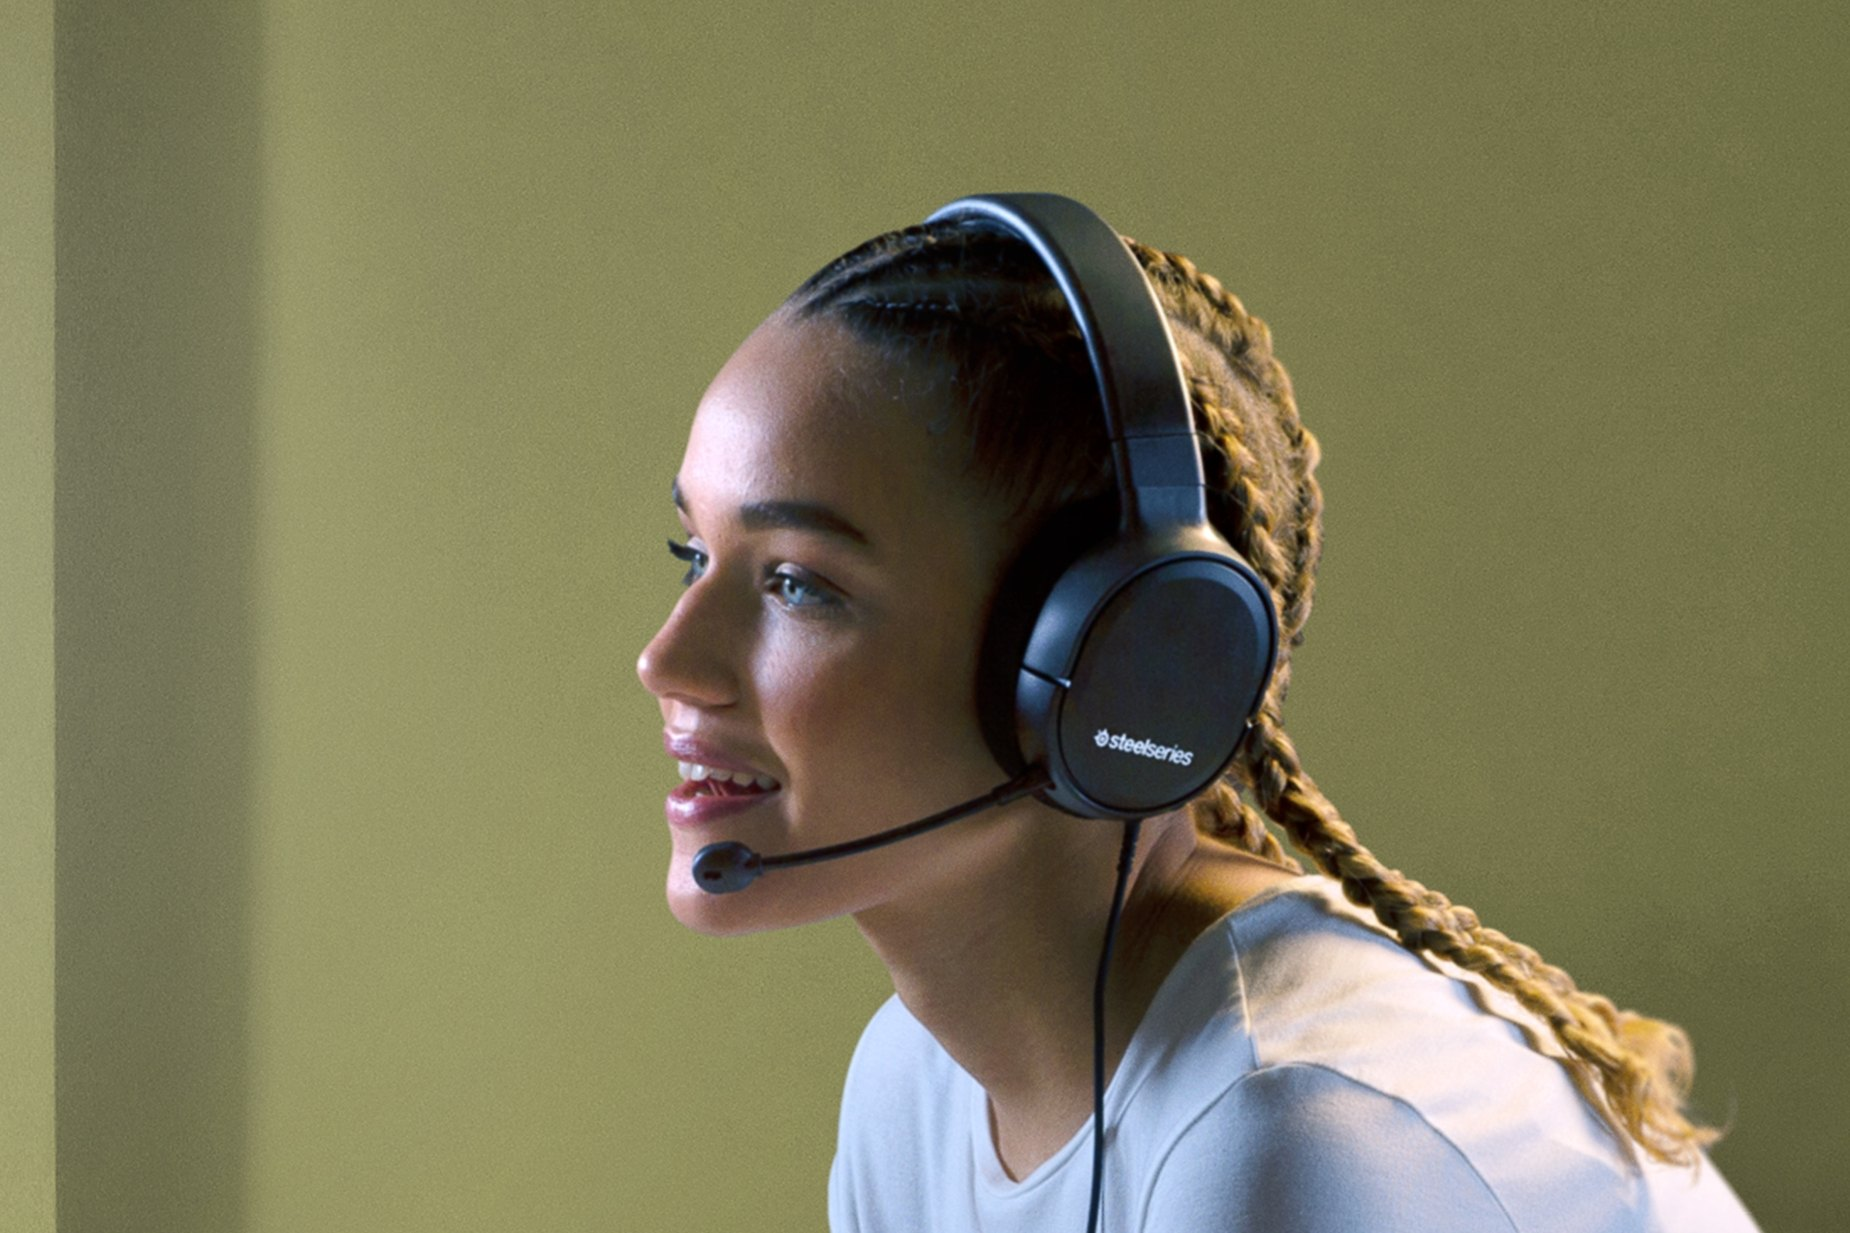 Gamer chatting with teammates via the Arctis 1 gaming headset microphone